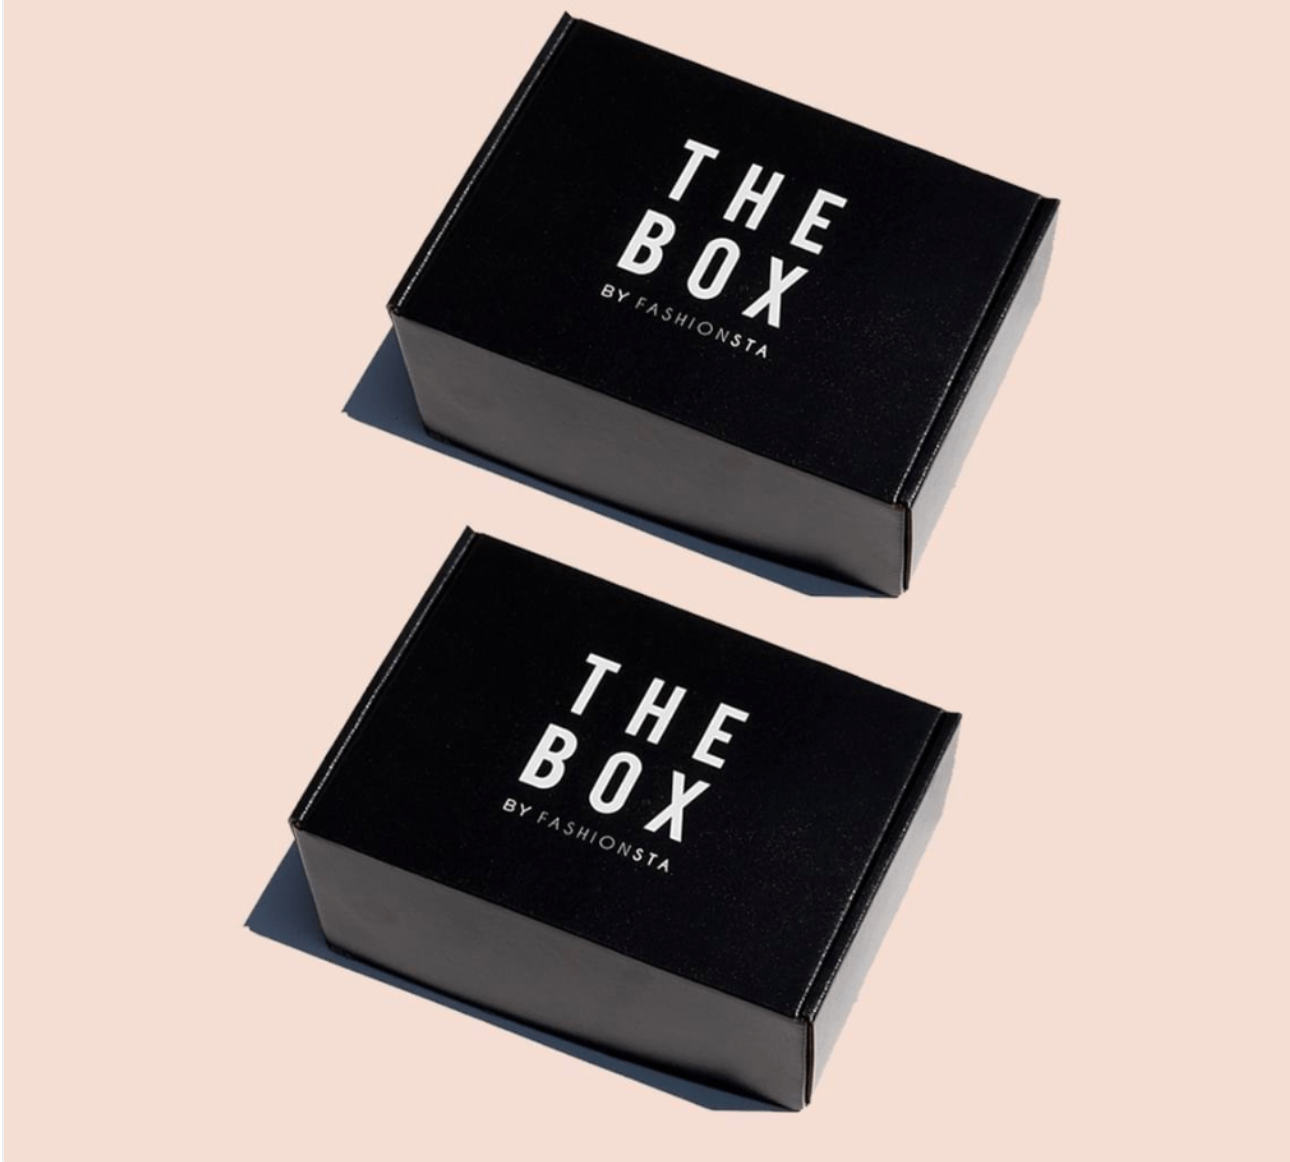 The Box By Fashionsta April 2021 Spoilers #1 and #2